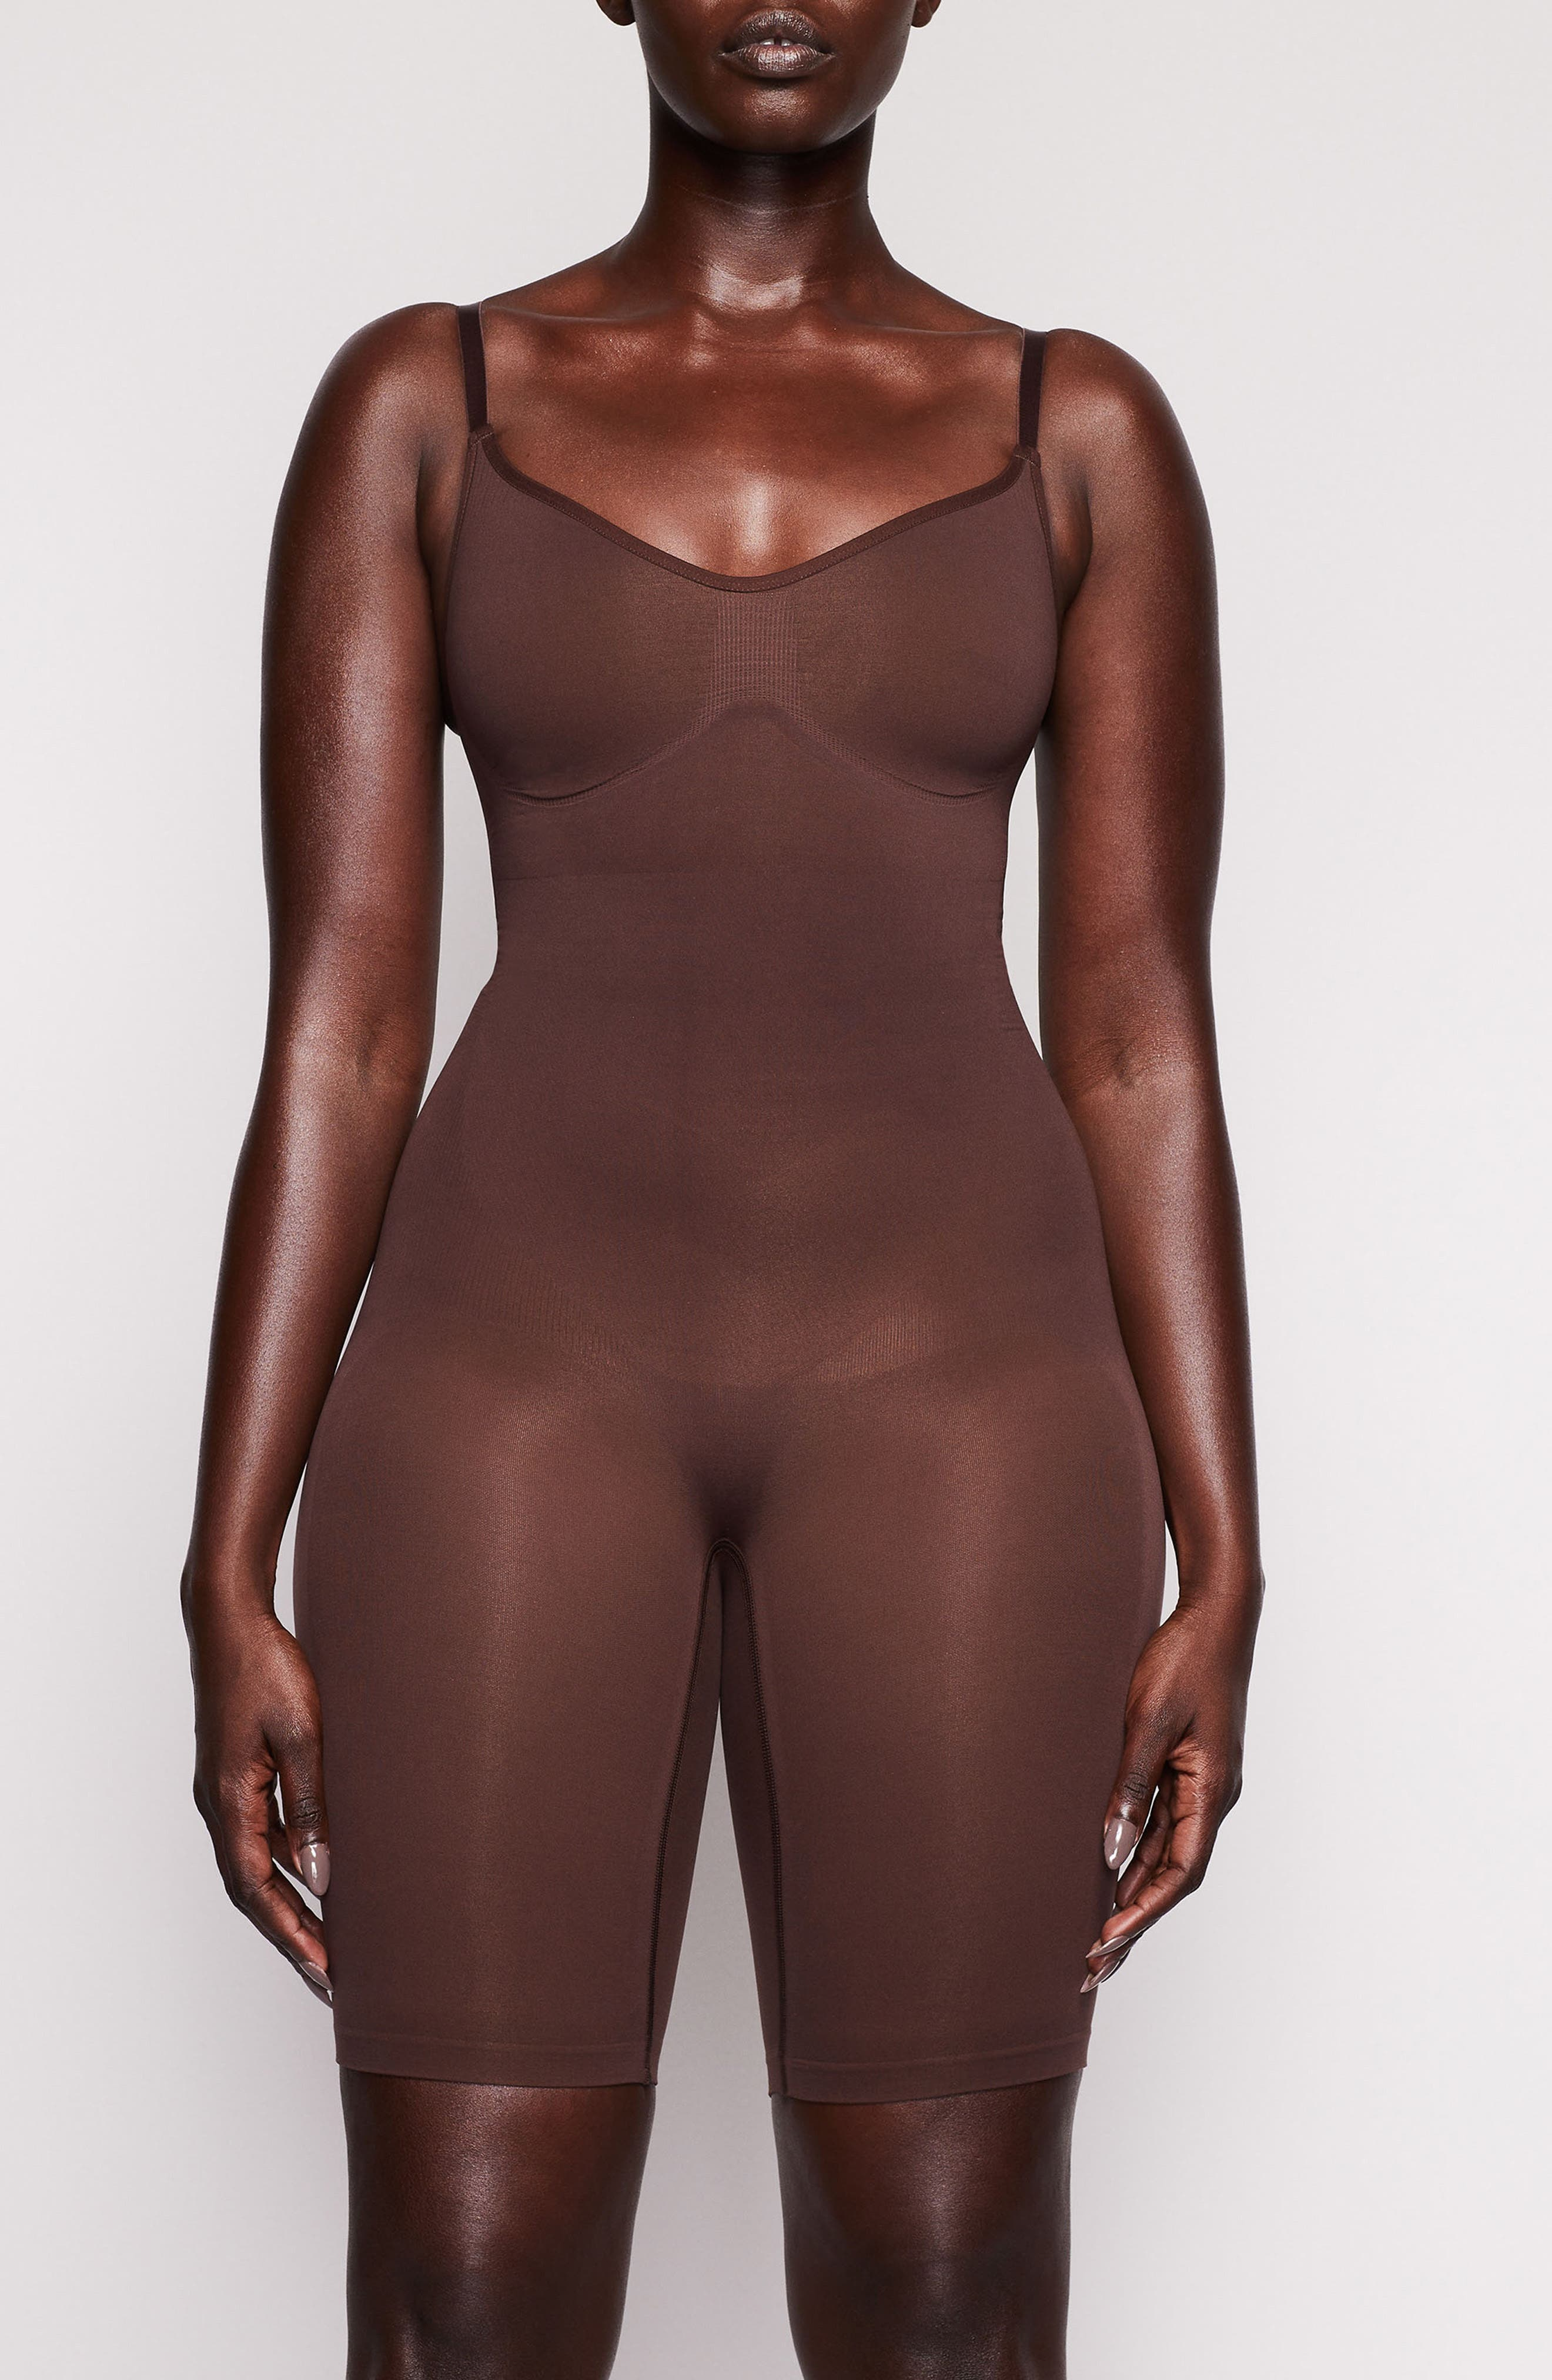 Sculpt your body\\\'s natural shape with a bodysuit from Kim Kardashian West\\\'s SKIMS that holds in your core, lifts your butt and supports your chest. Reflecting the brand\\\'s passion for highly technical shapewear solutions for every body, this mid-thigh piece has a whisper-soft, seamless construction and comes in nine different shades to complement your skintone. Style Name: Skims Sculpting Seamless Mid-Thigh Bodysuit (Regular & Plus Size). Style